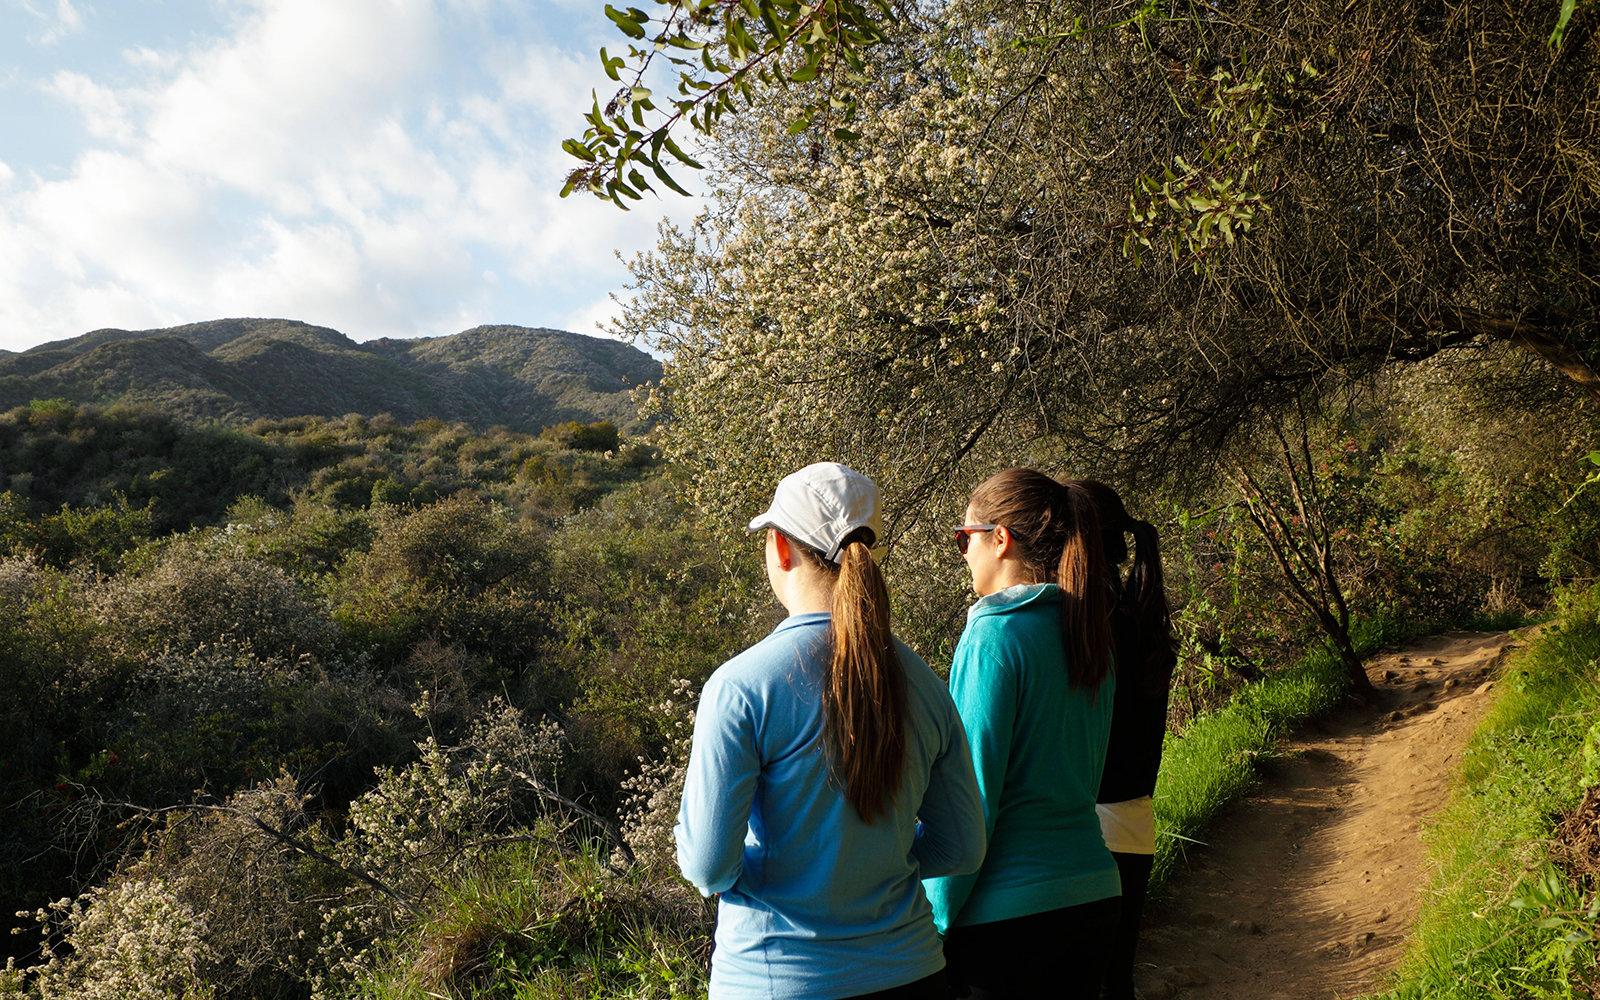 D36NK6 Hikers on the Los Leones Trail (also called Los Liones) gaze at the Santa Monica Mountains